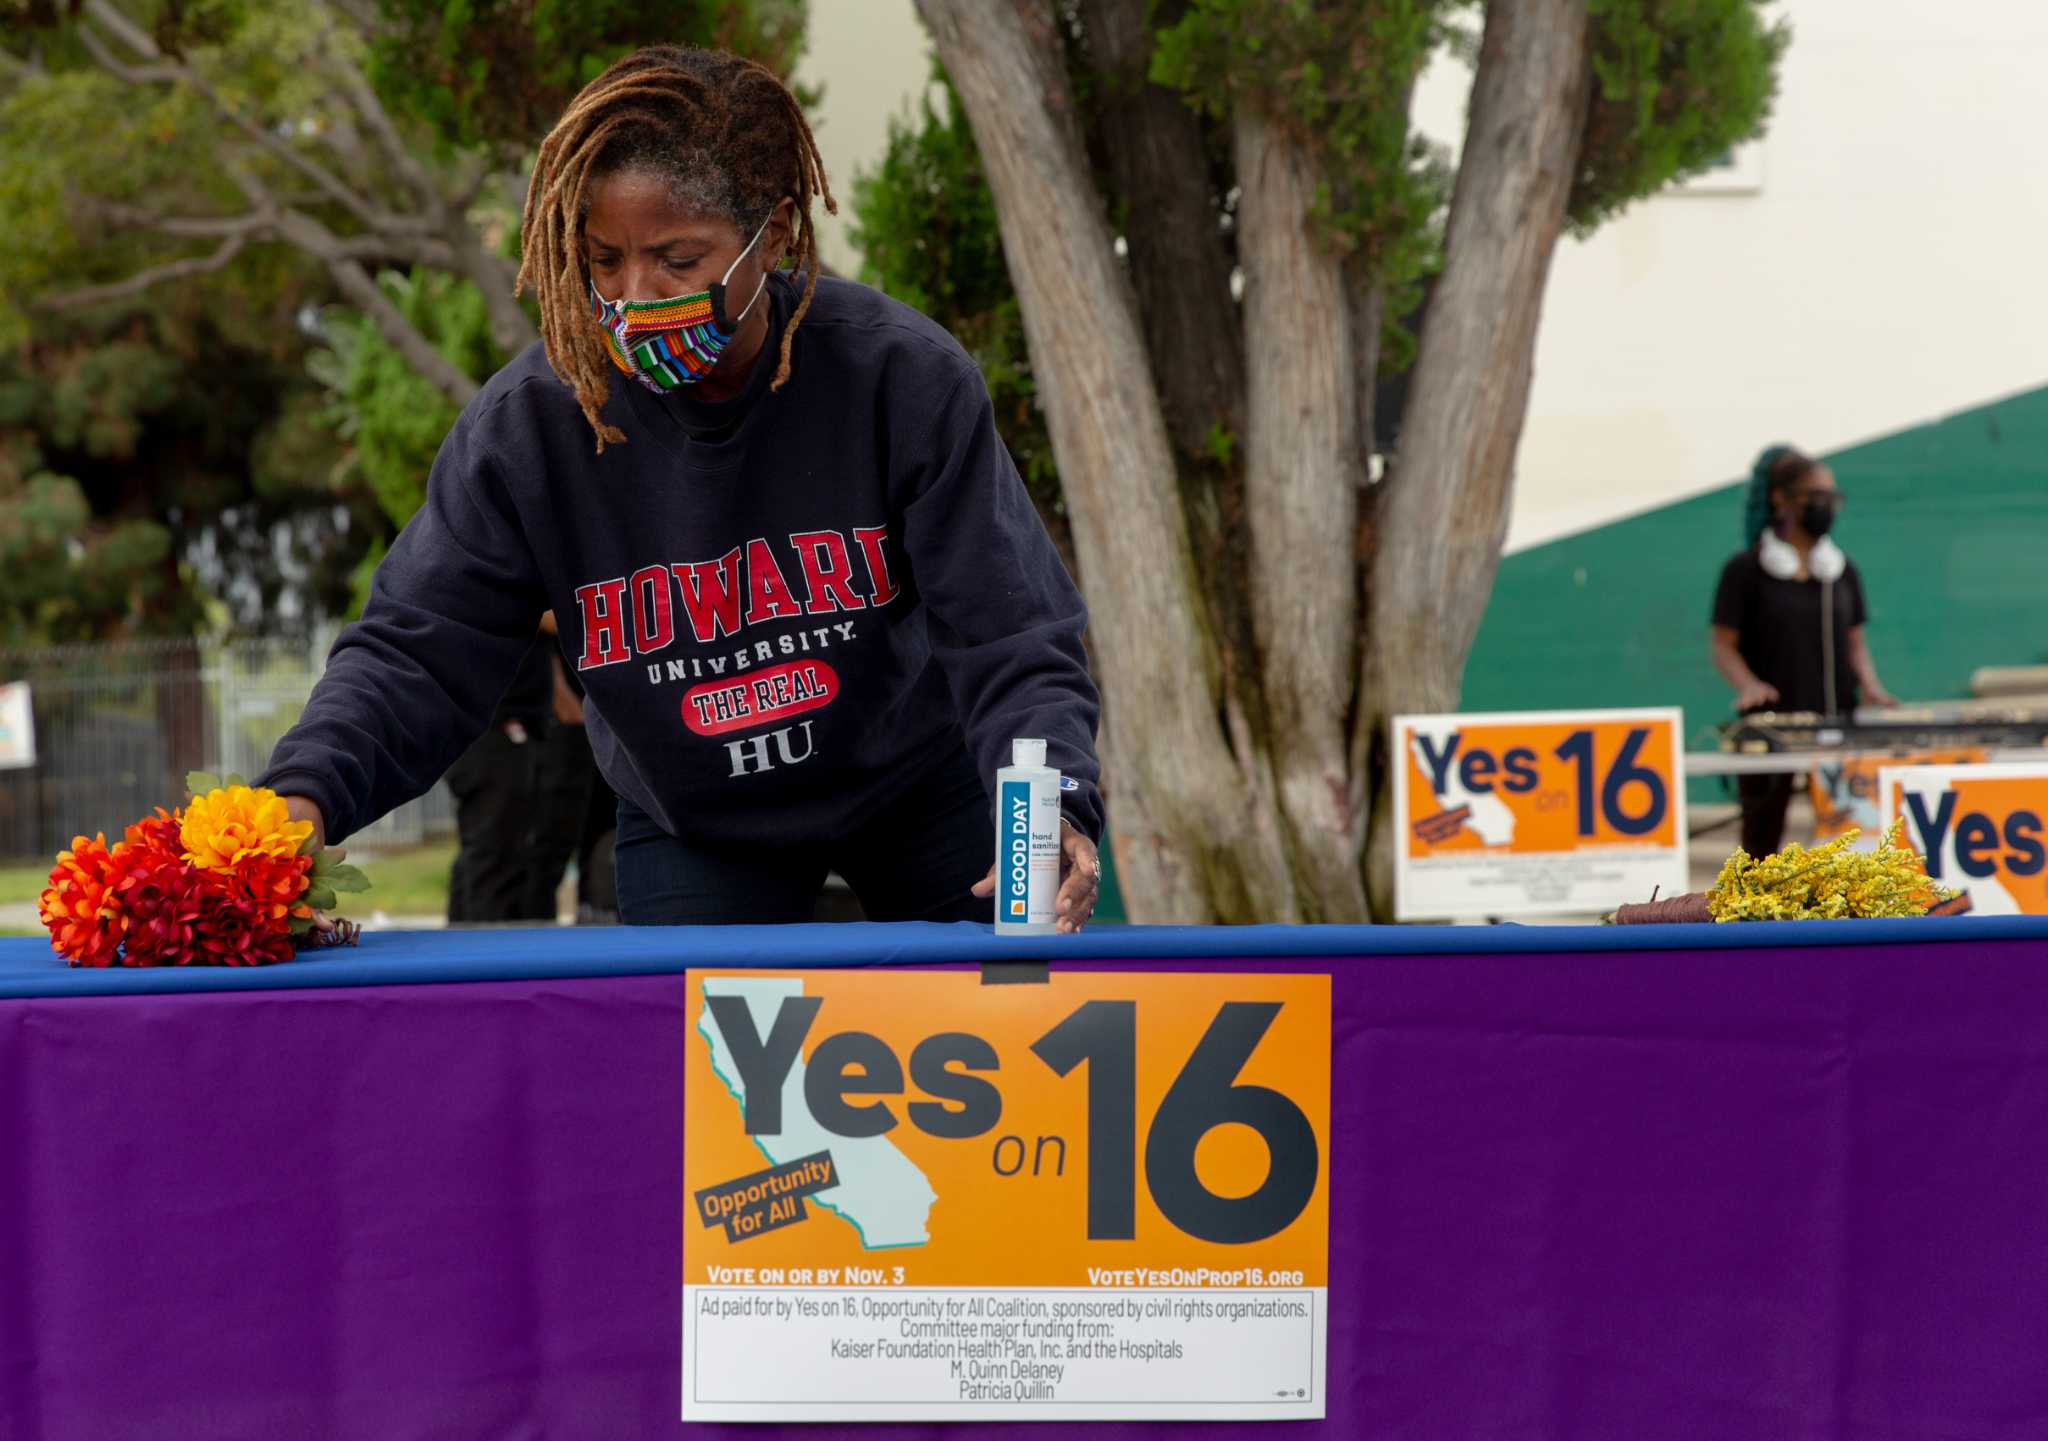 California voters revisit a fraught history on race with a referendum on the 1990s